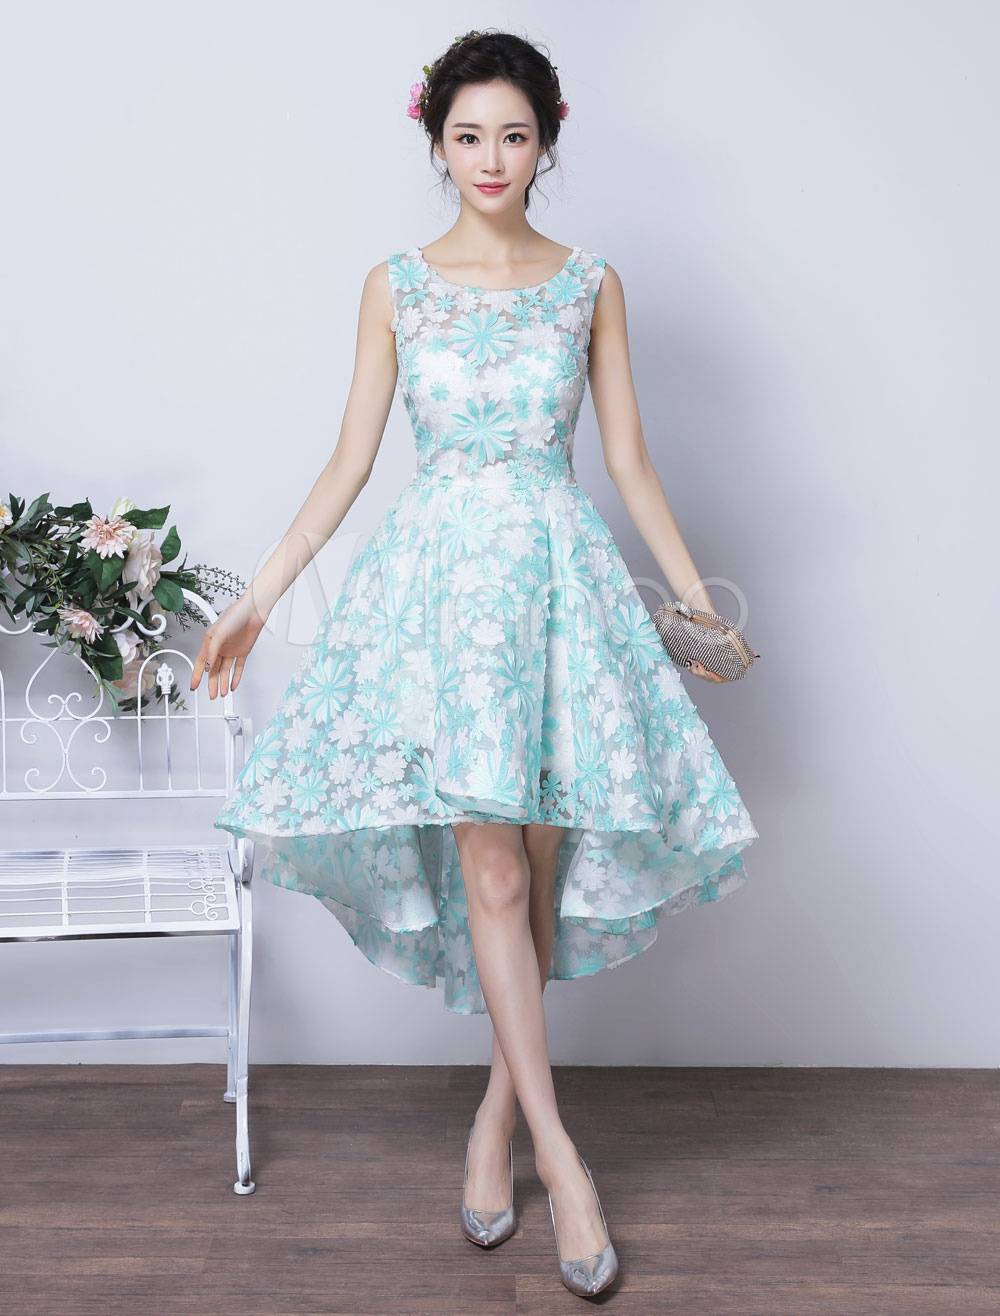 Lace Prom Dresses 2018 Short Mint Green Homecoming Dress Flowers Sleeveless High Low Party Dress (Wedding) photo